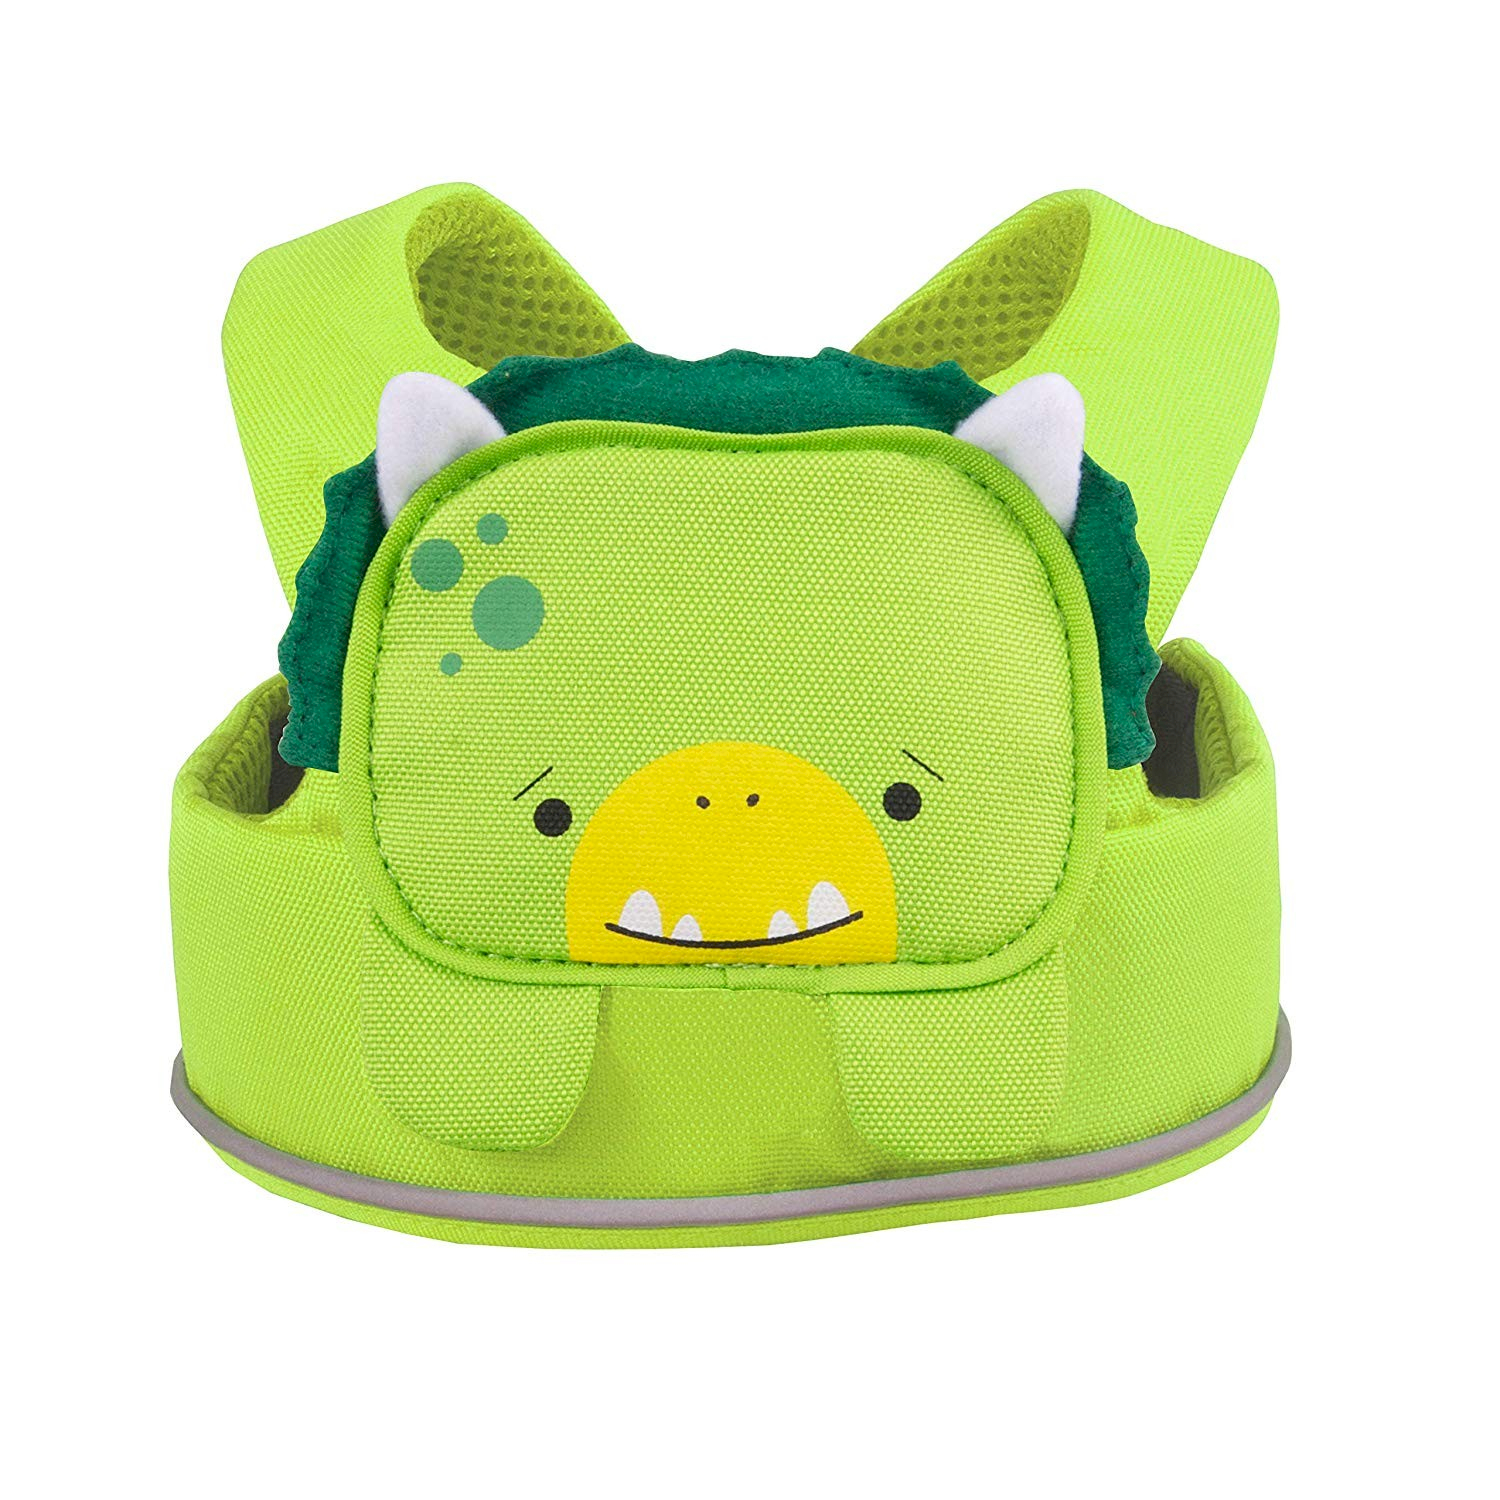 Trunki ToddlePak Dudley